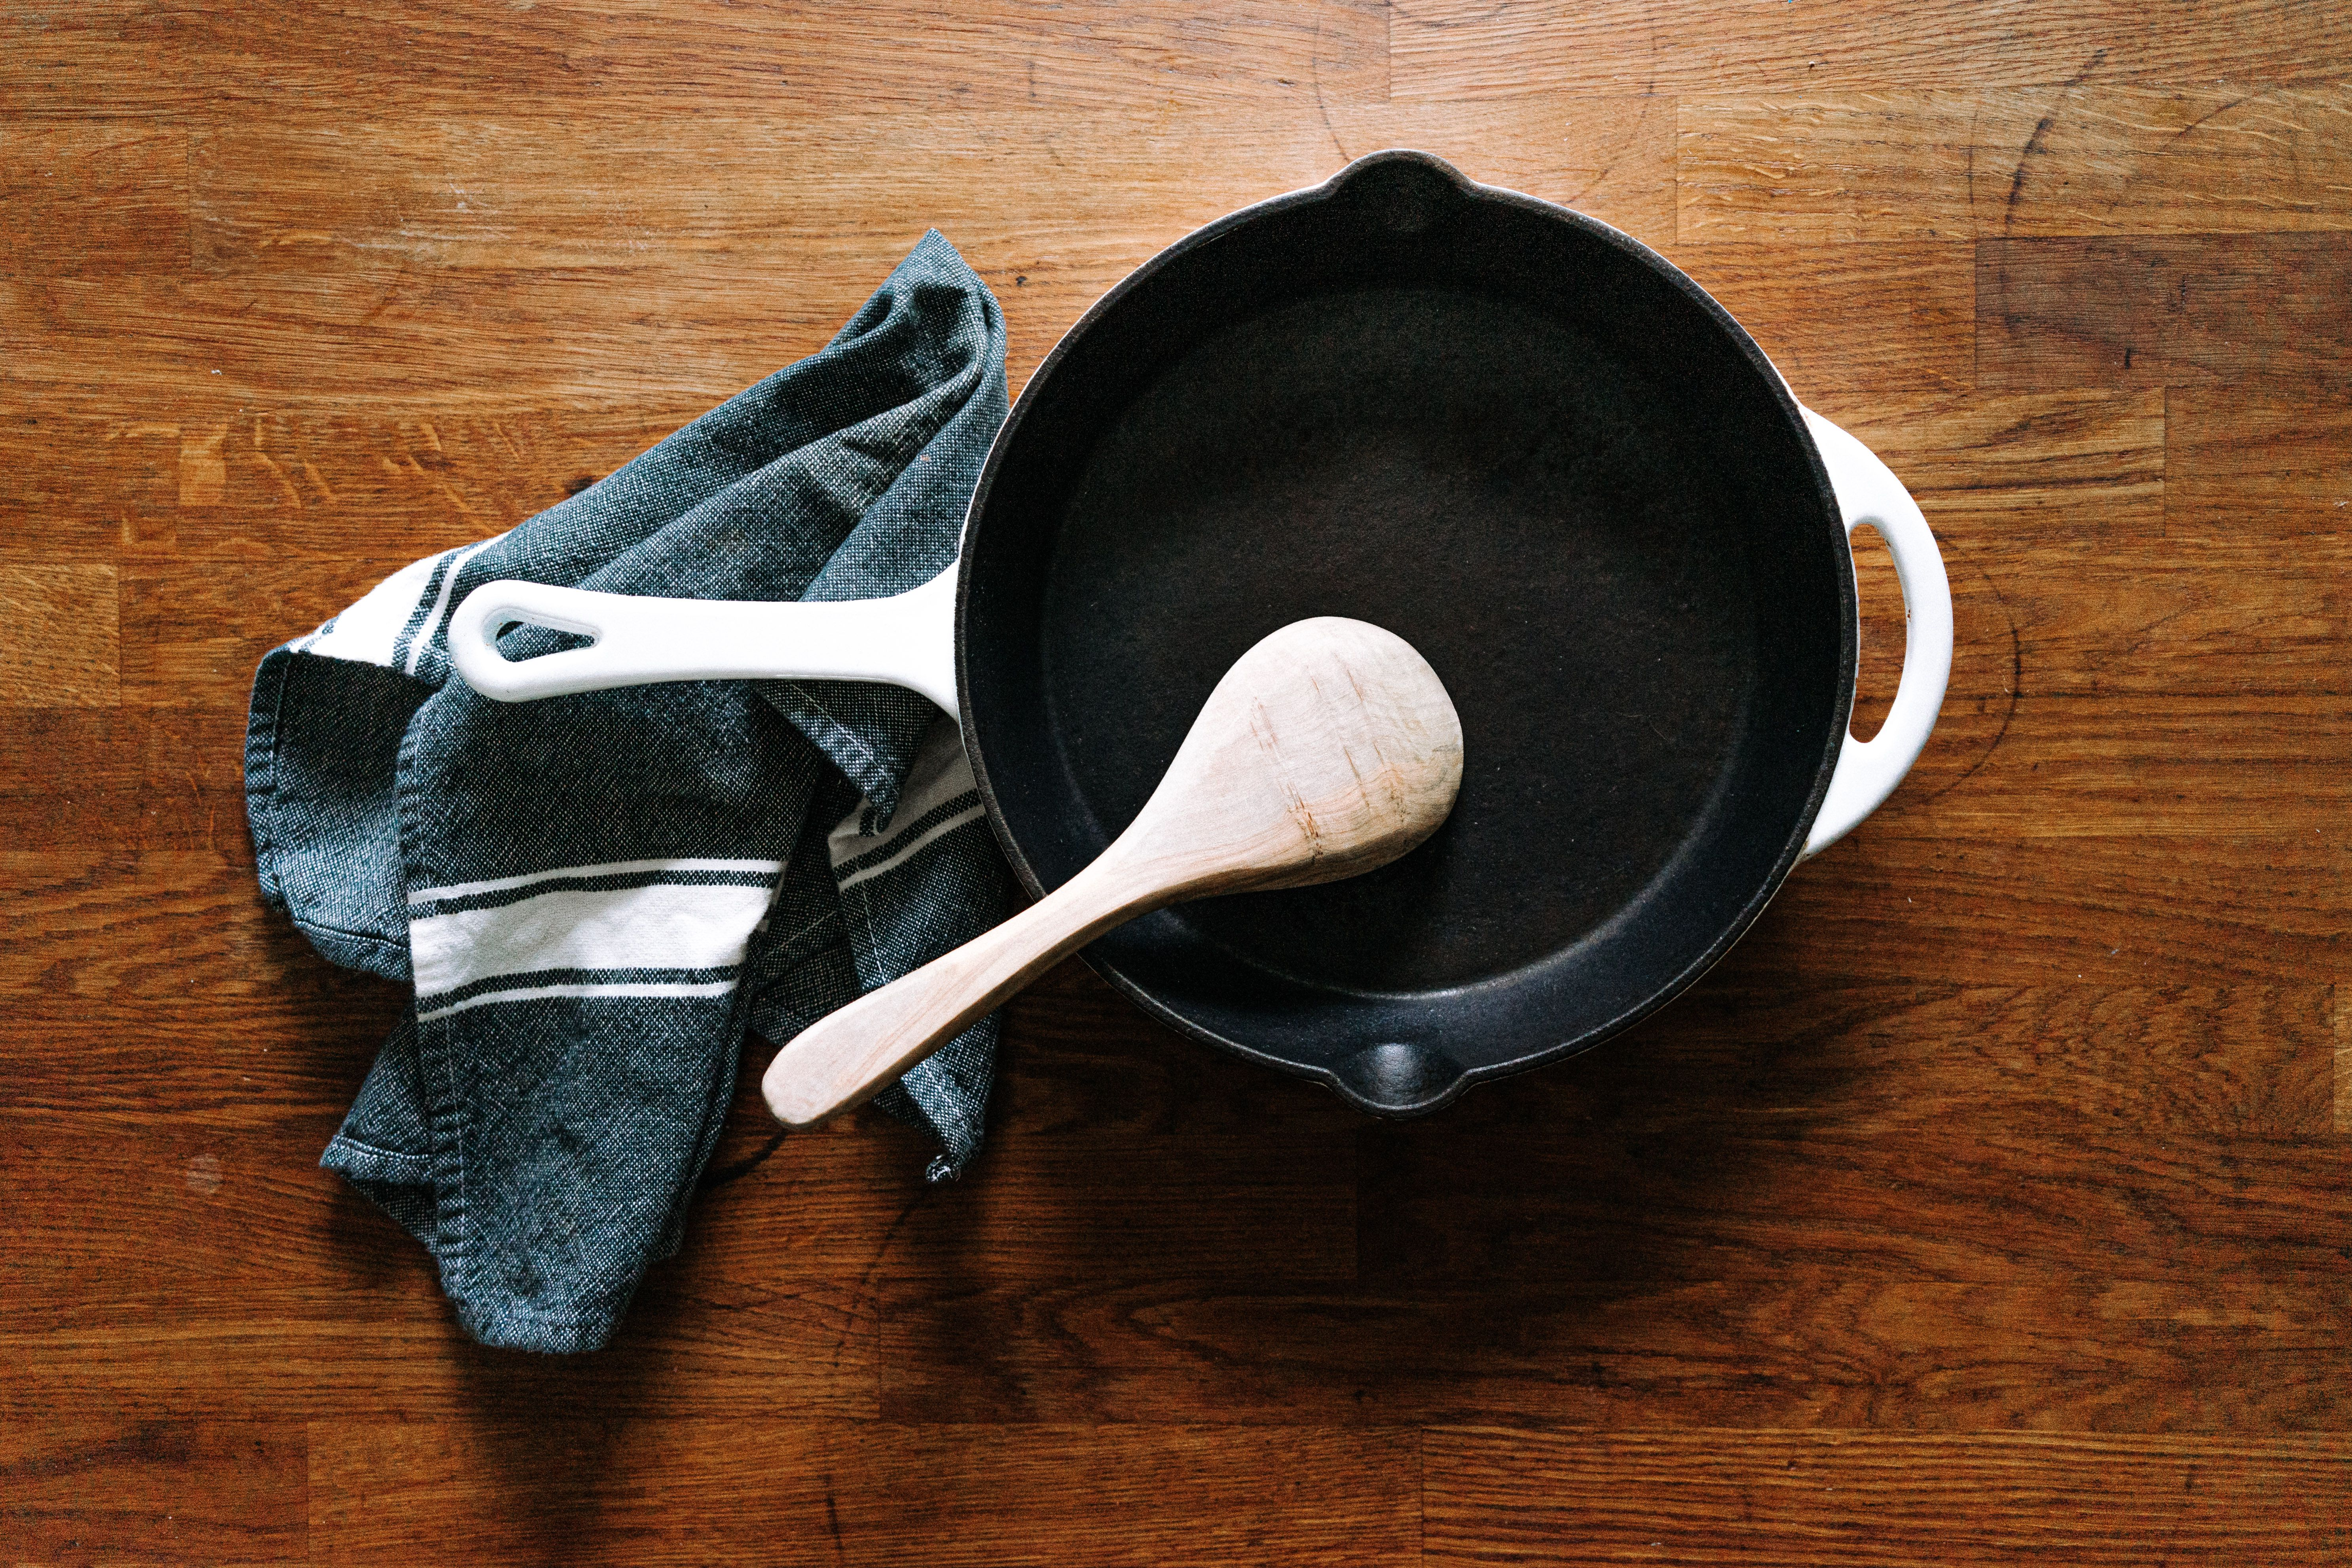 This is The Right Way to Clean a Cast Iron Skillet